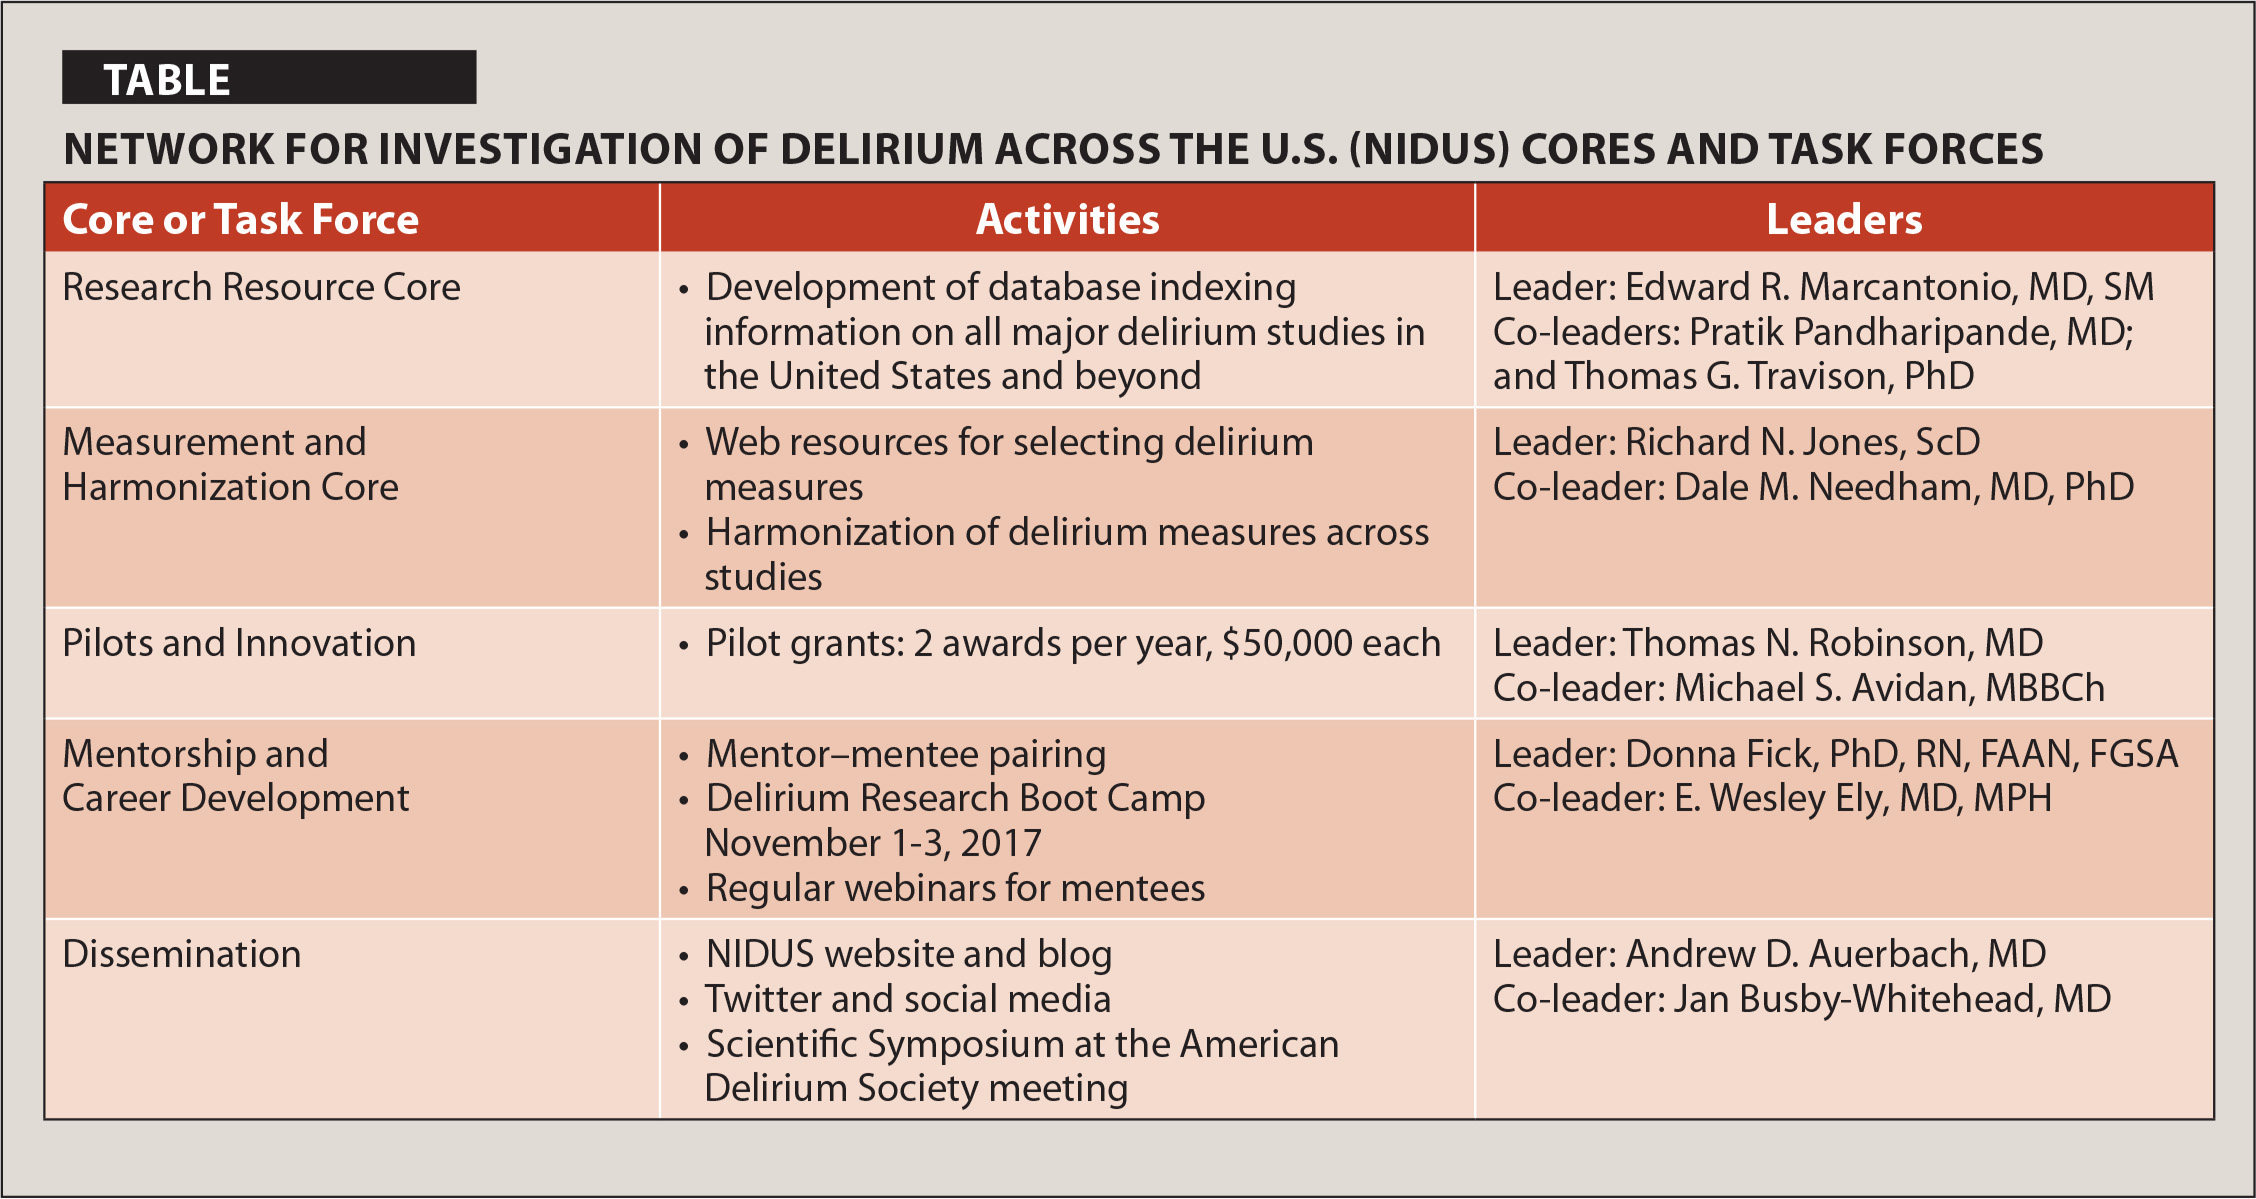 Network for Investigation of Delirium Across the U.S. (NIDUS) Cores and Task Forces